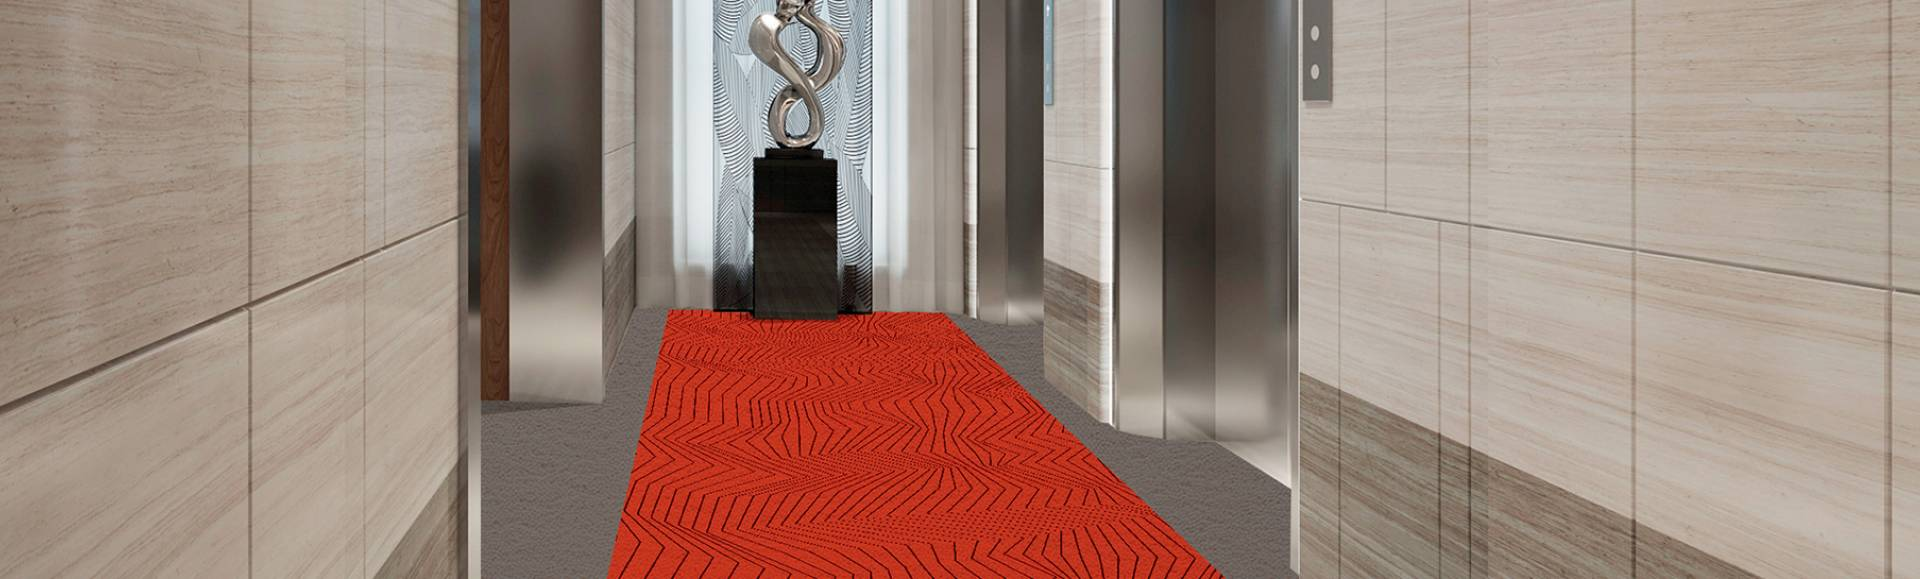 welcome_balsan_moquette_mikado_rouge_orange